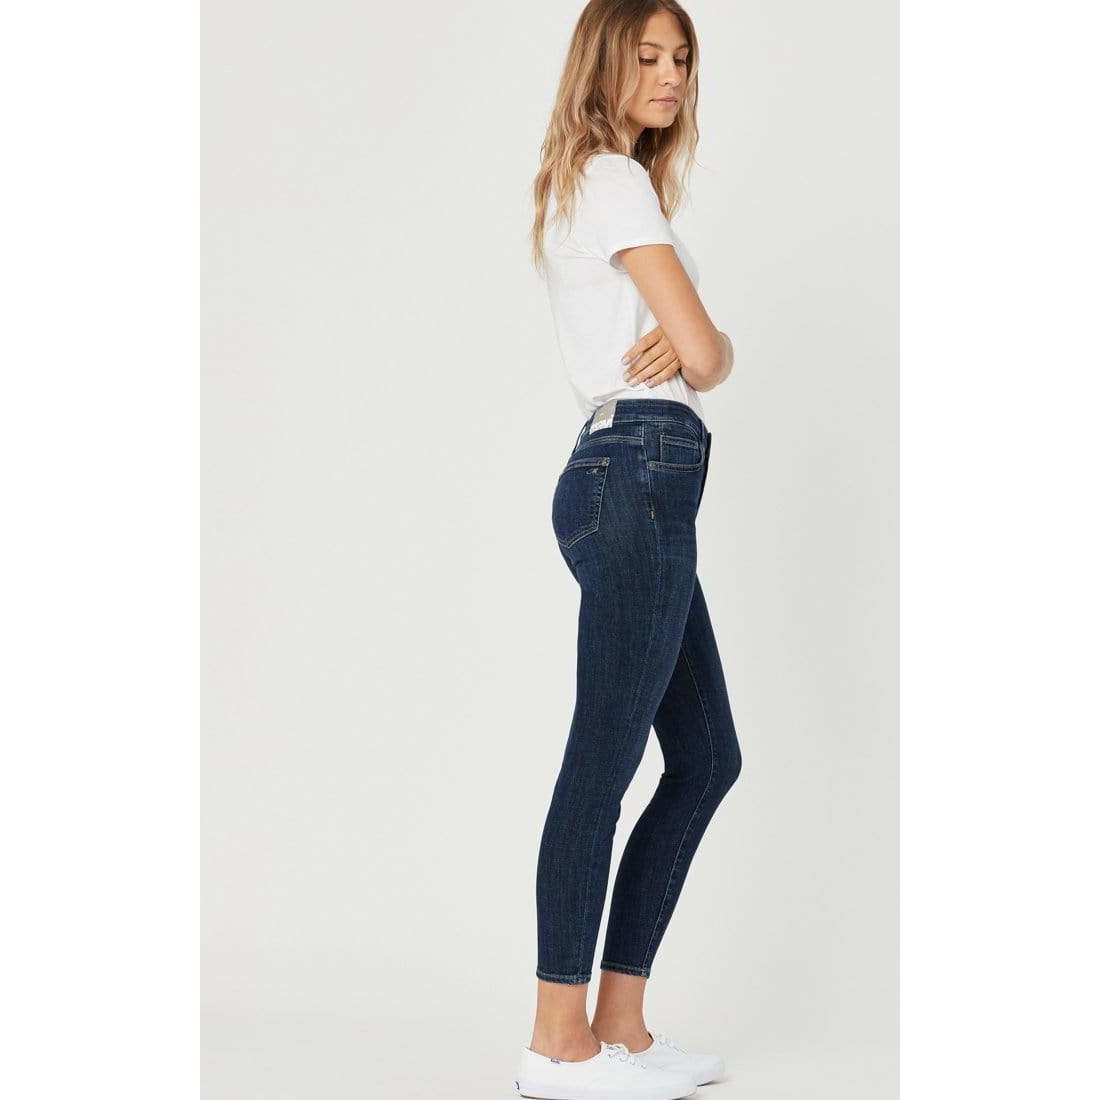 Mavi Jeans Mavi Scarlet in Dark Feather Blue